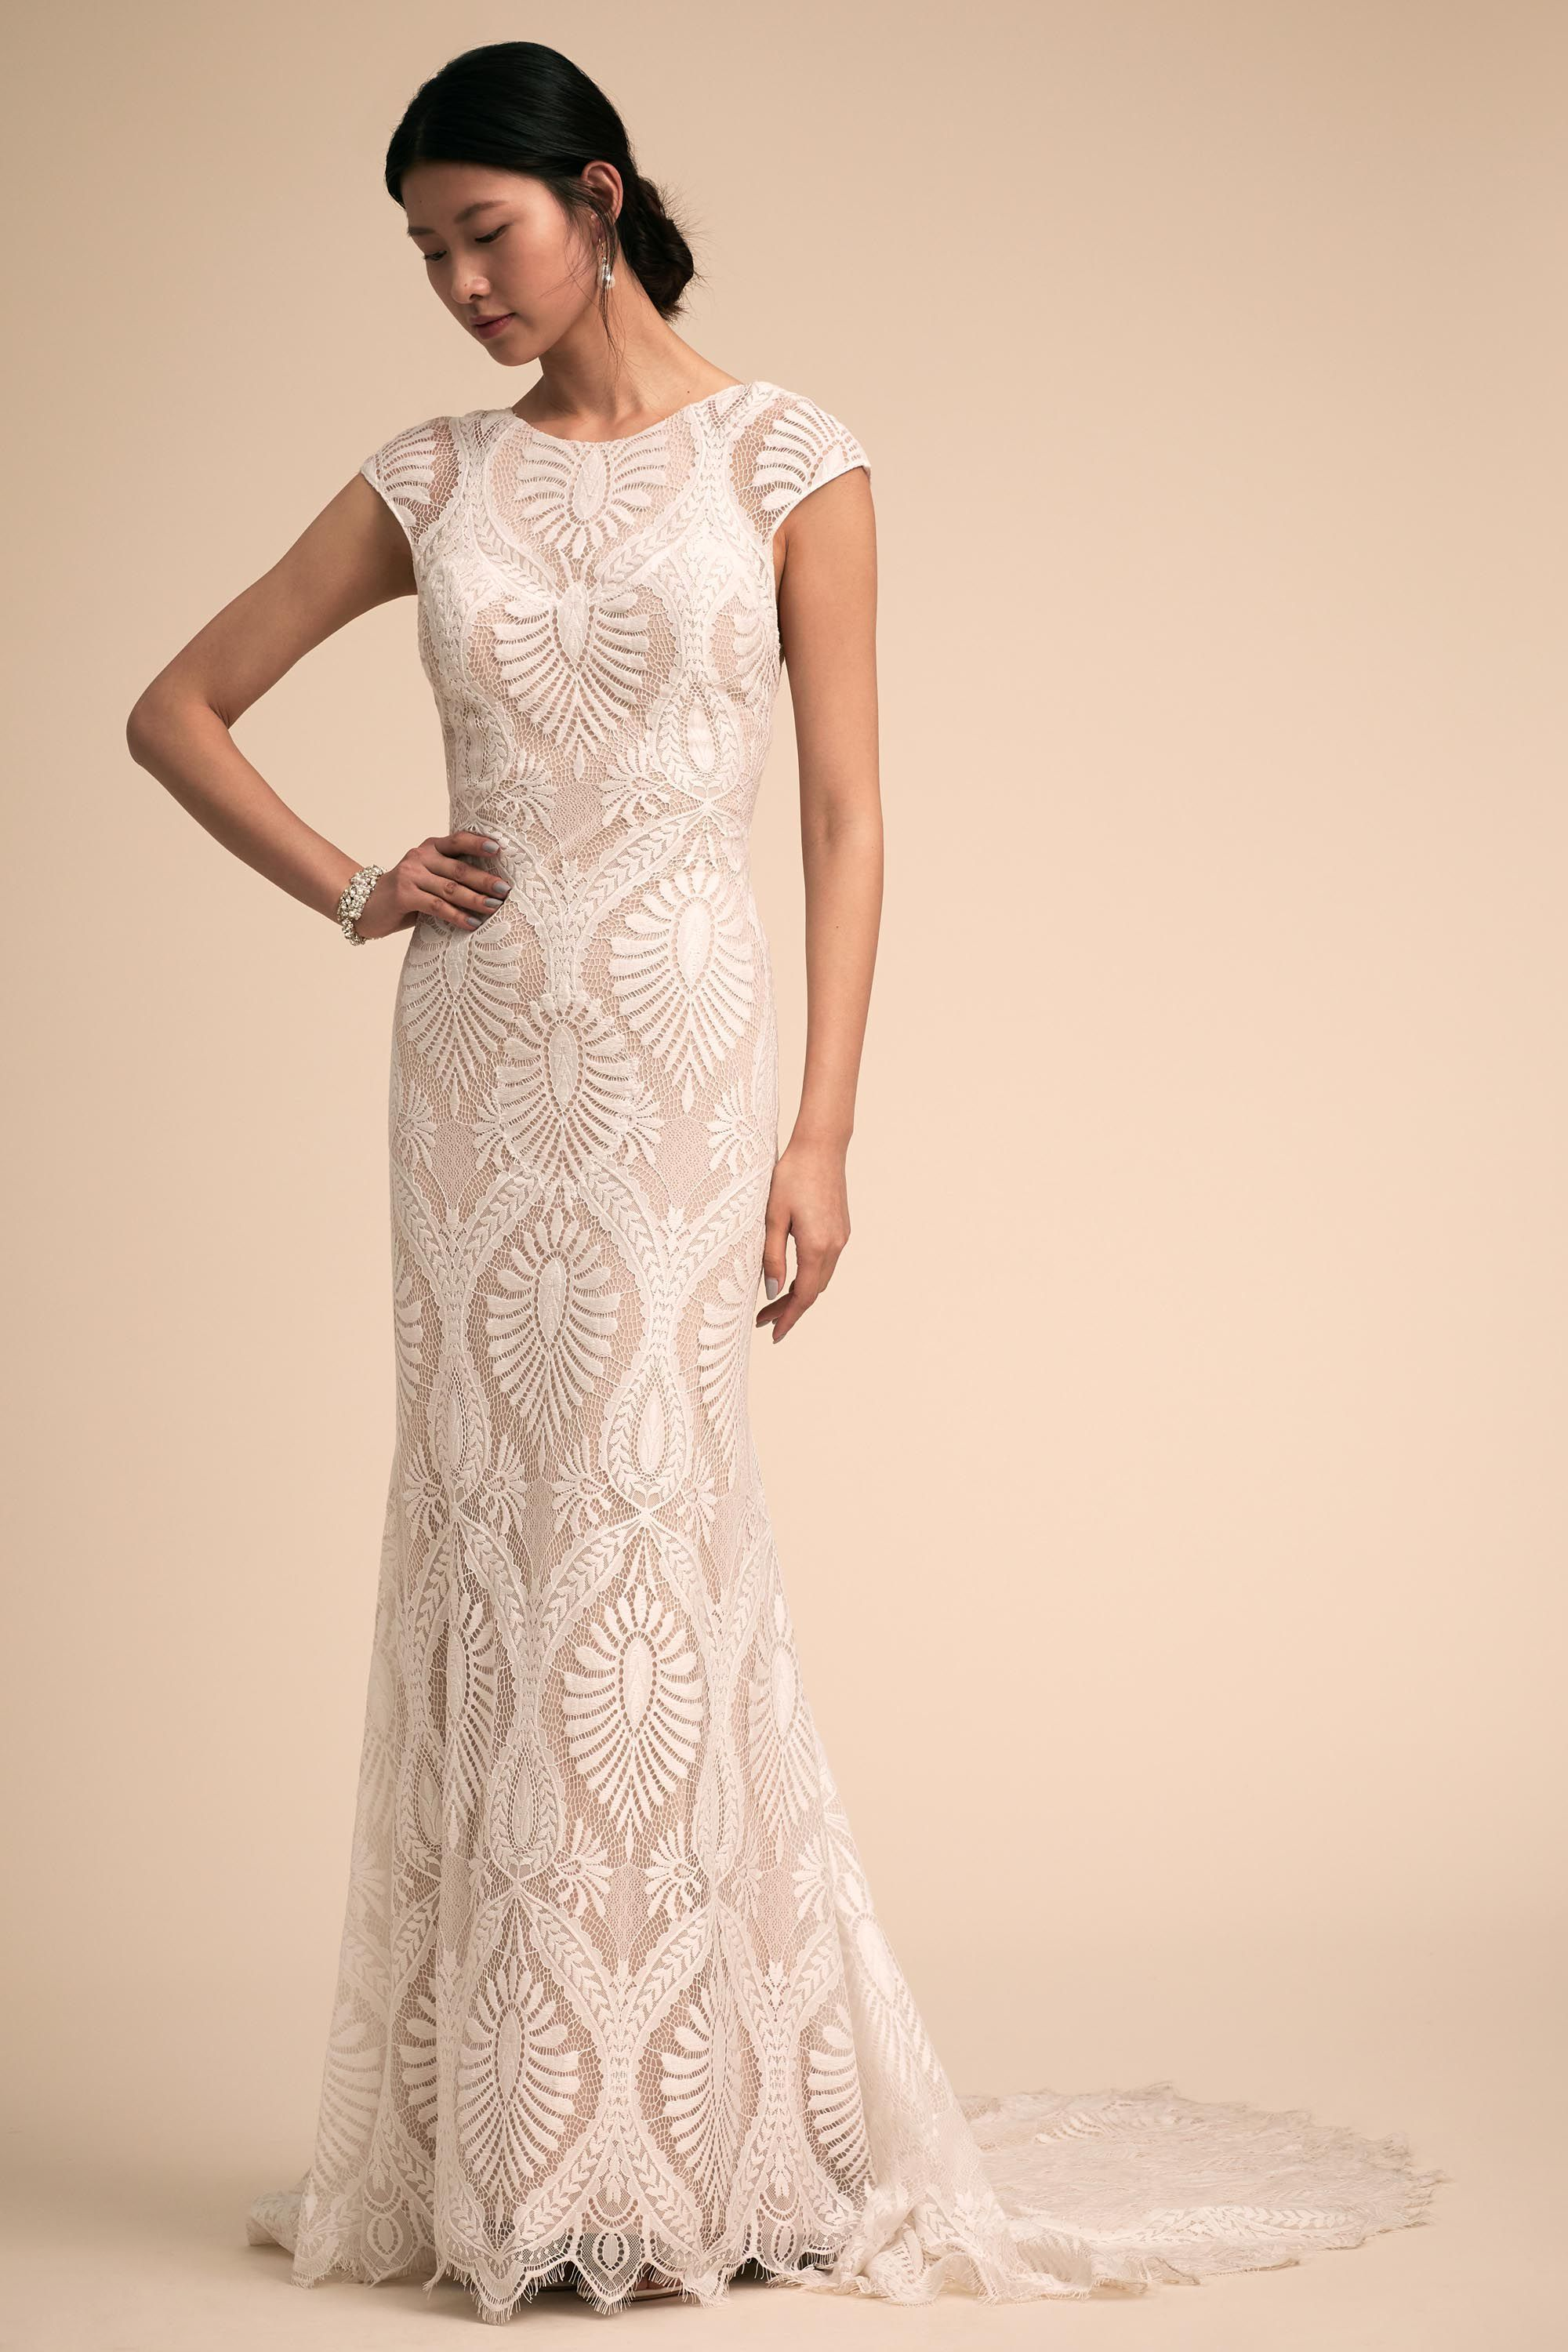 Ludlow Gown From Bhldn  The Dress  Wedding Dresses -5017